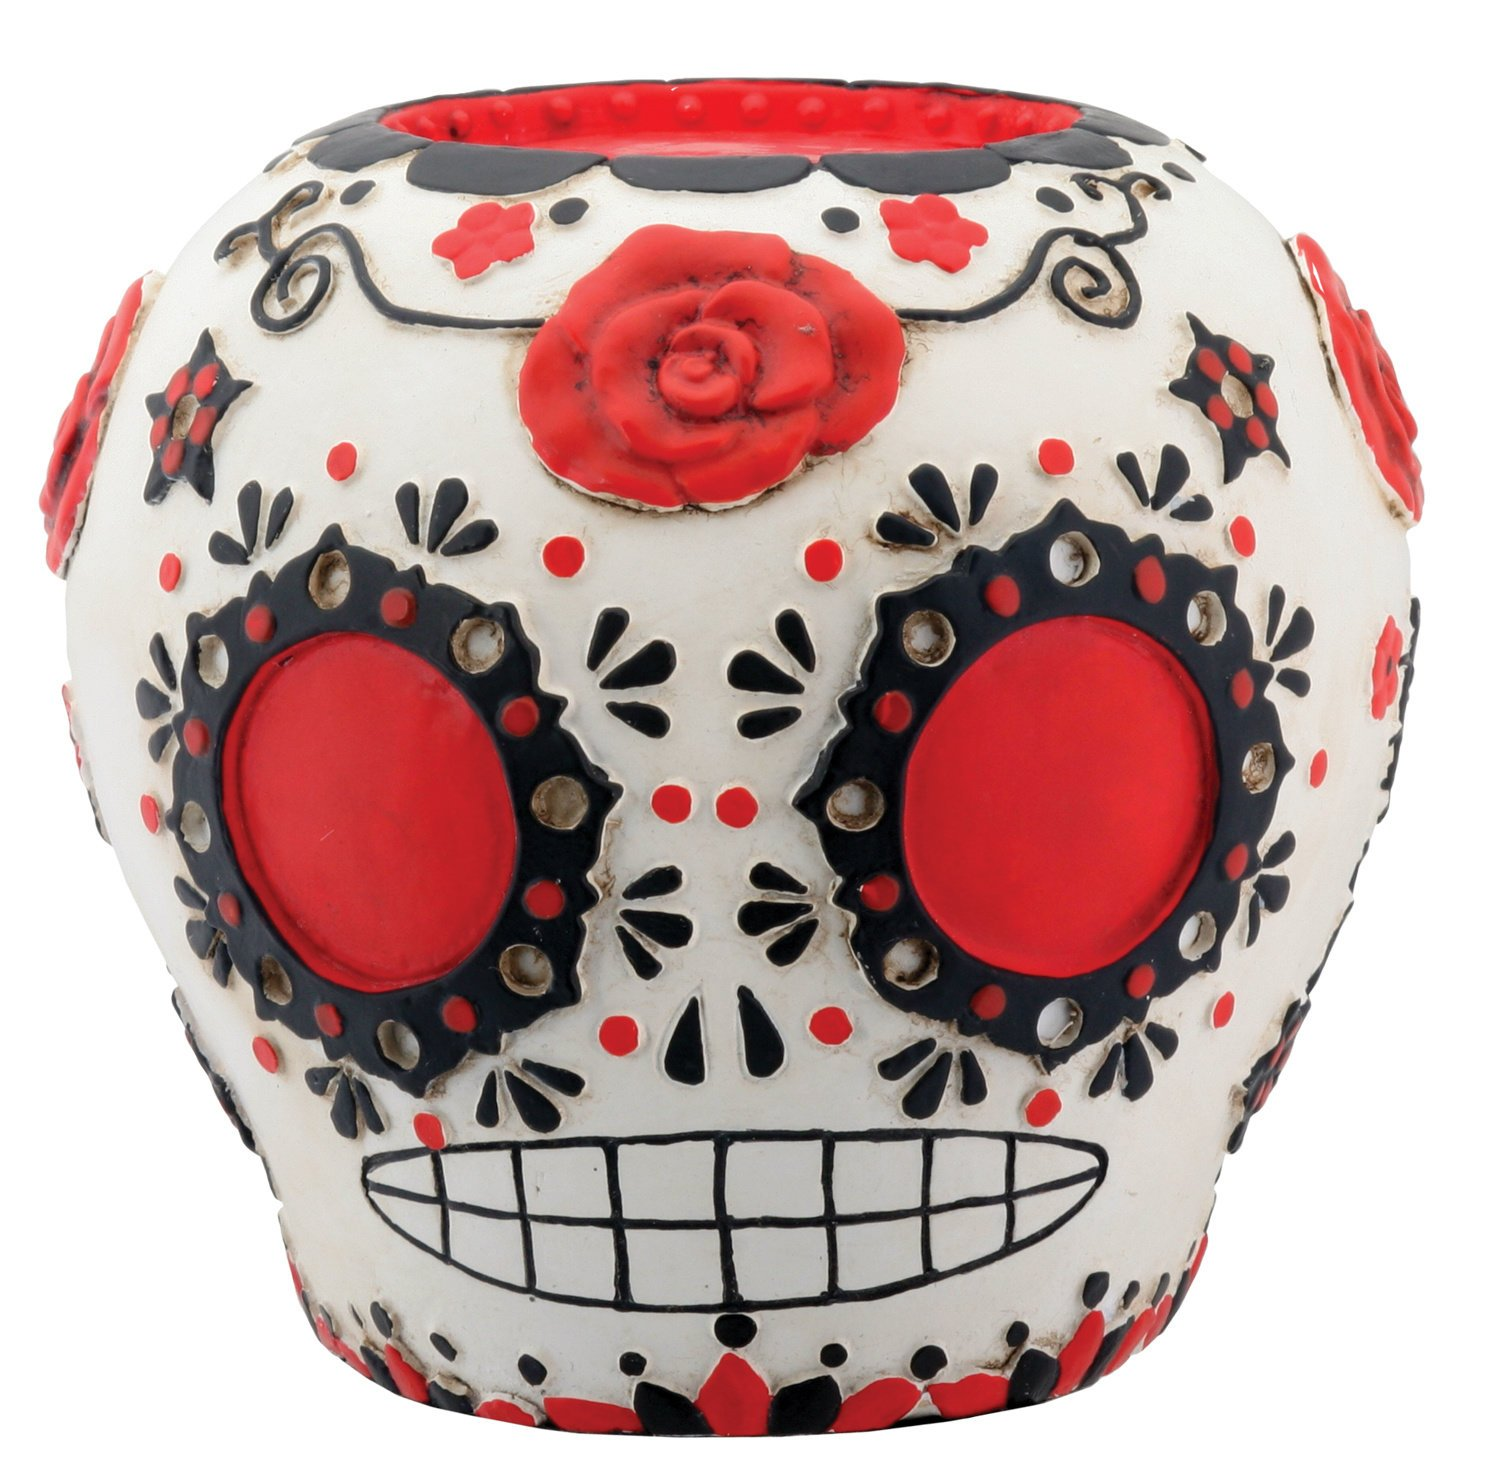 amazoncom day of the dead red sugar skull with floral decoration figurine home u0026 kitchen